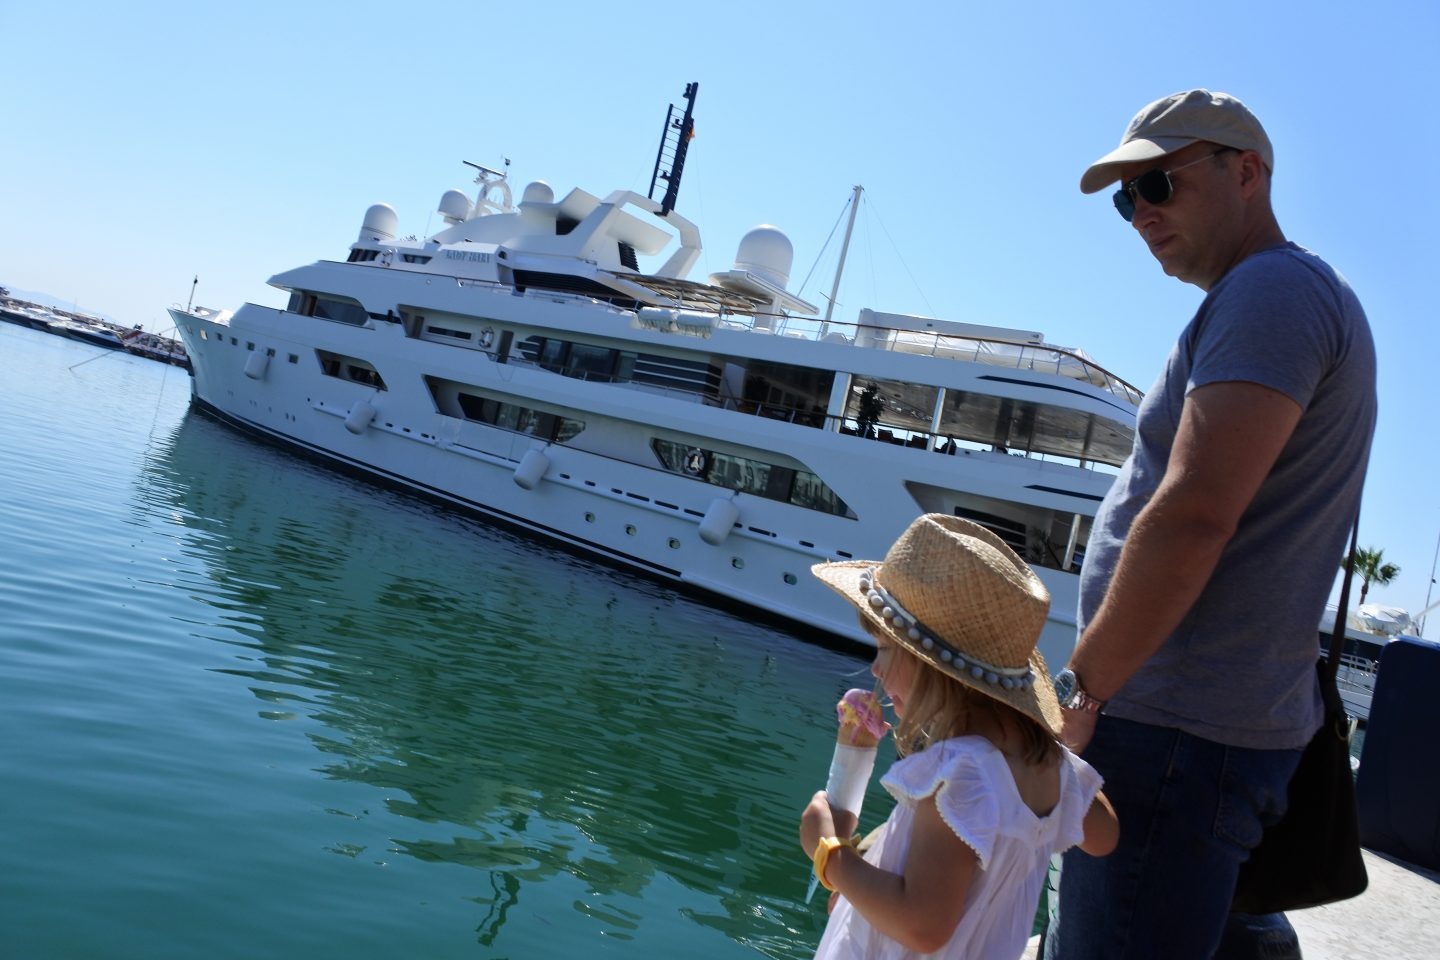 Things to do in Marbella with kids